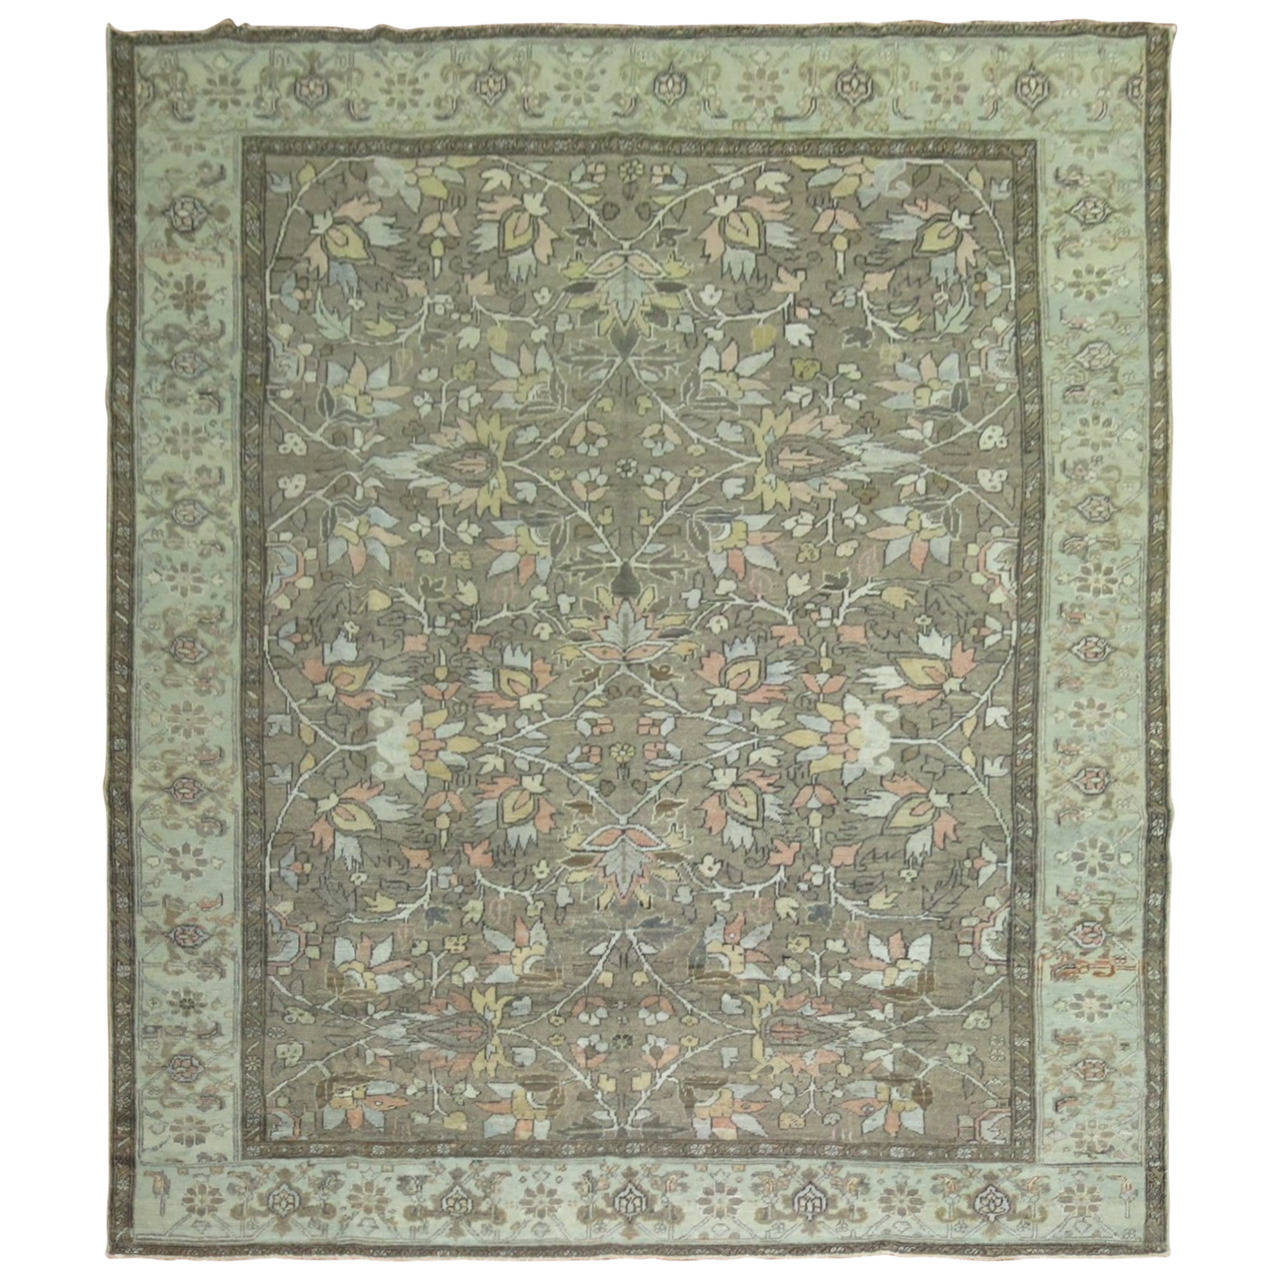 All-Over Antique Persian Heriz Carpet, circa 1920 For Sale